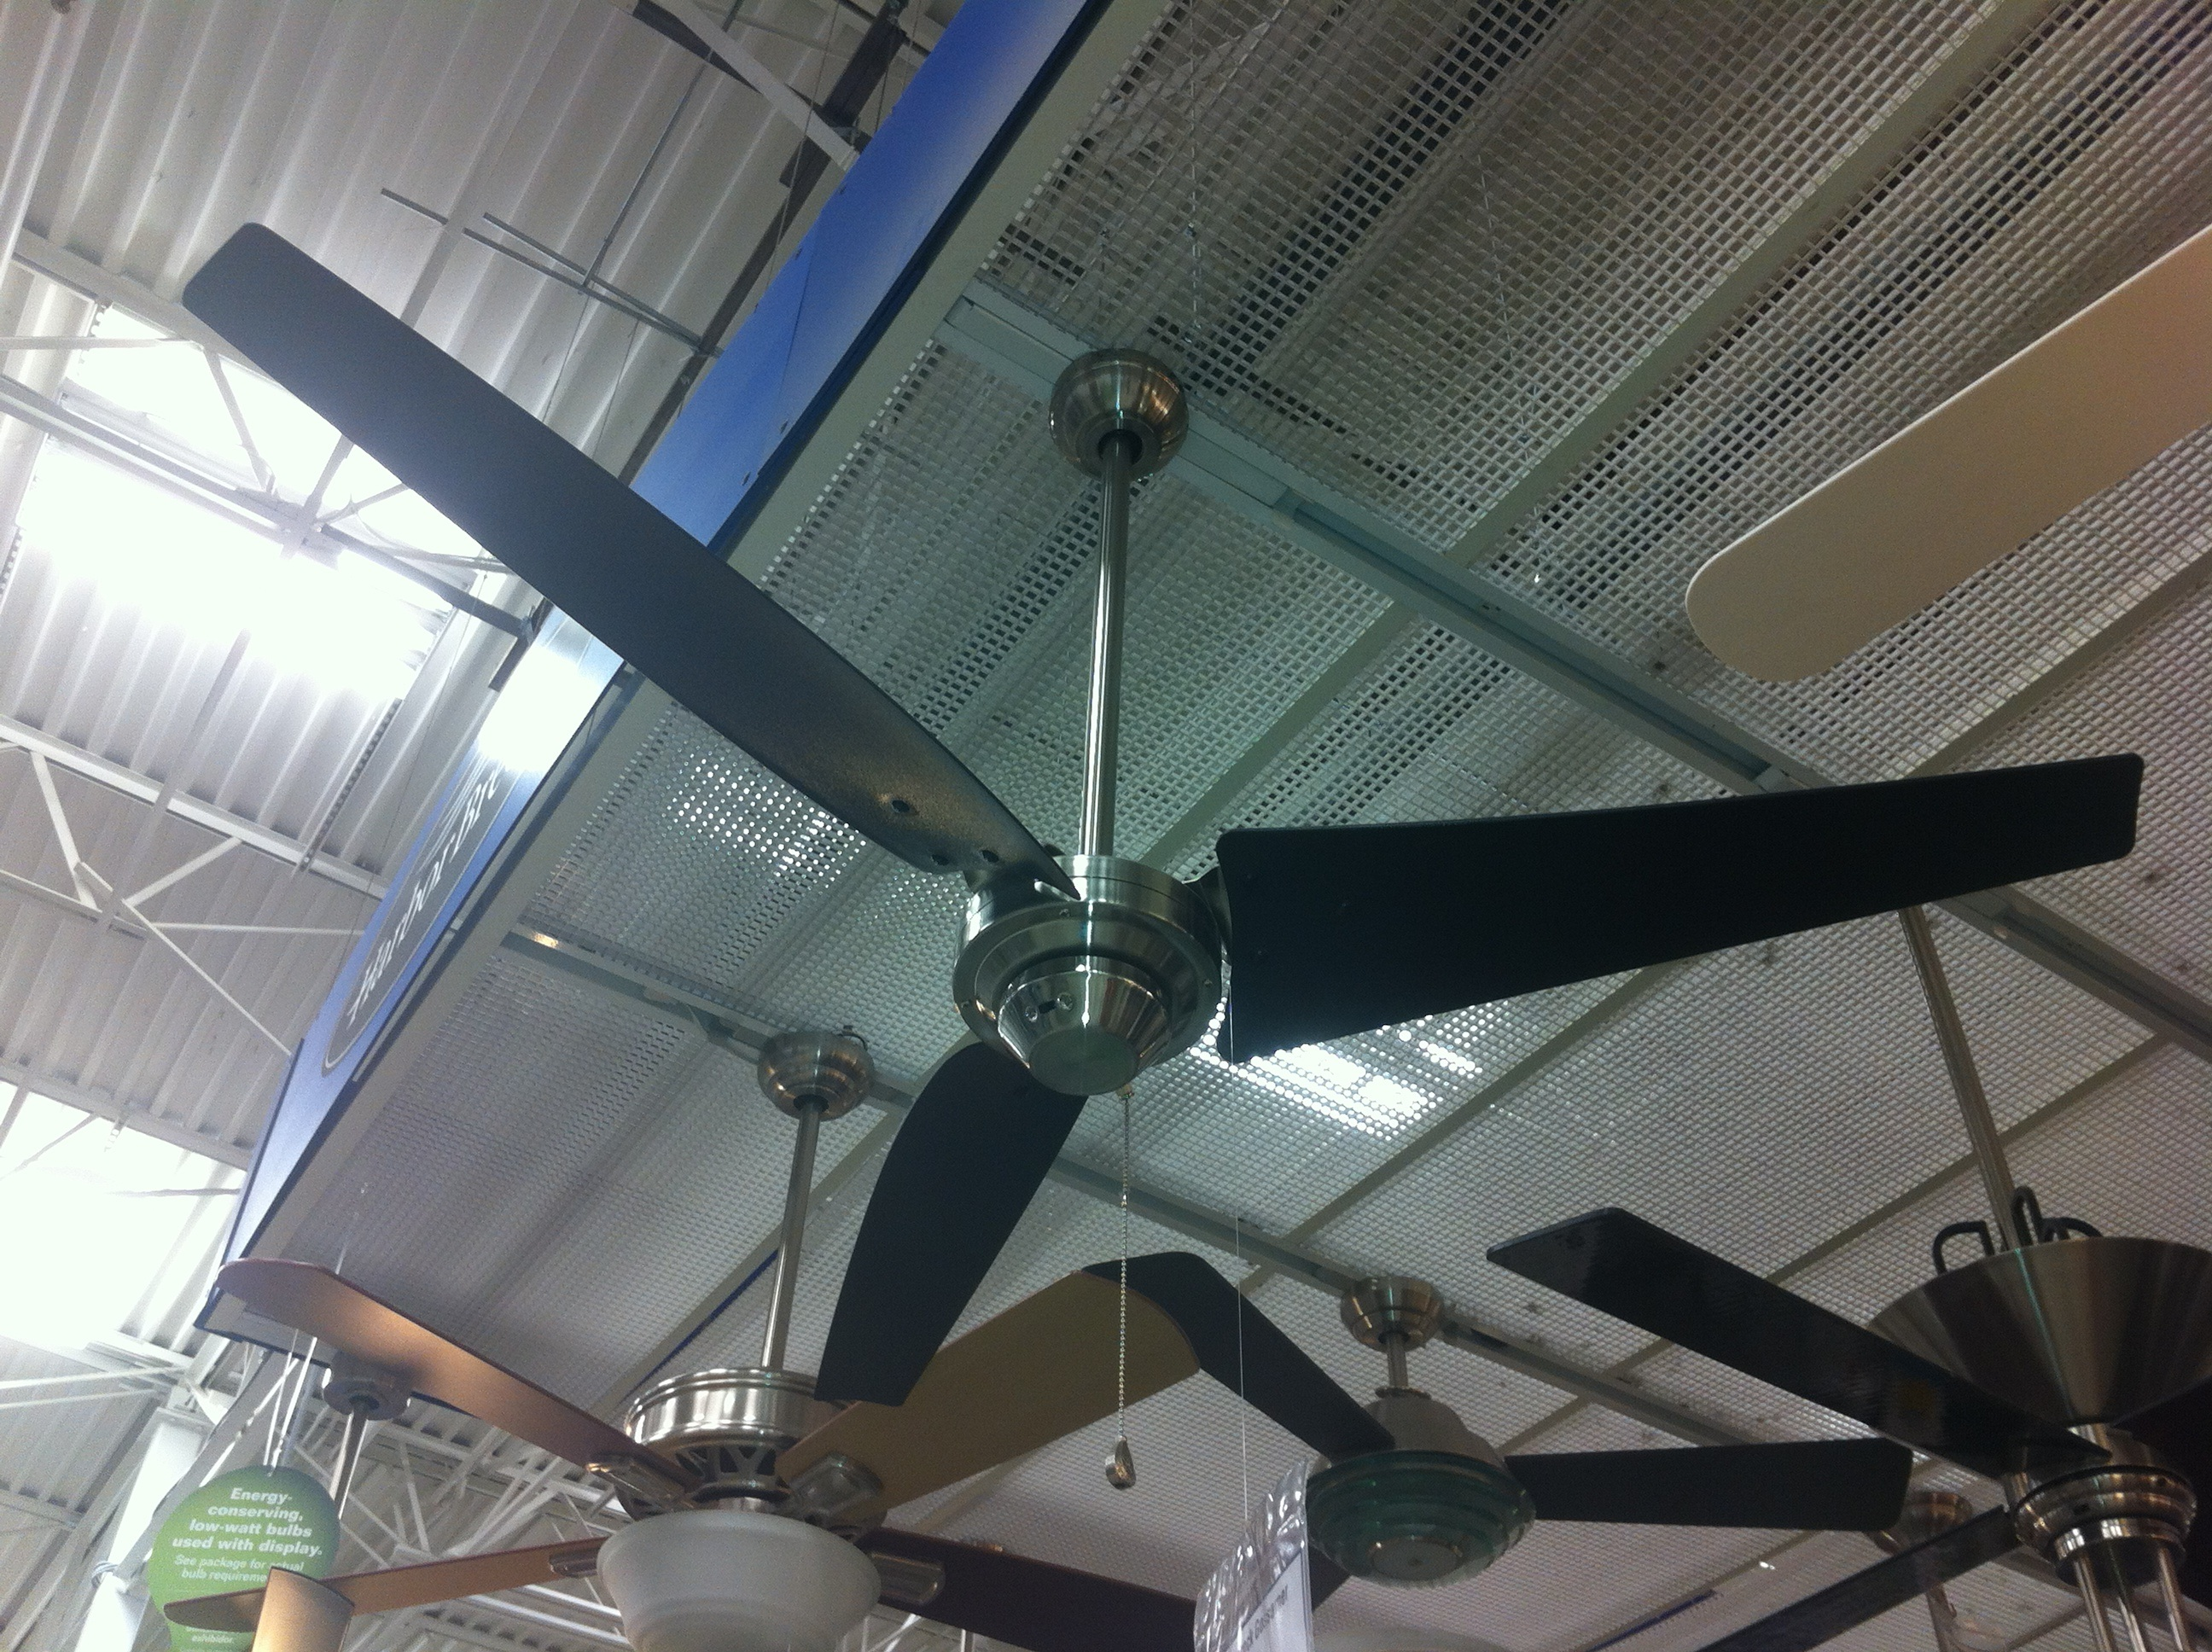 Industrial Ceiling Fan | THE CAVENDER DIARY